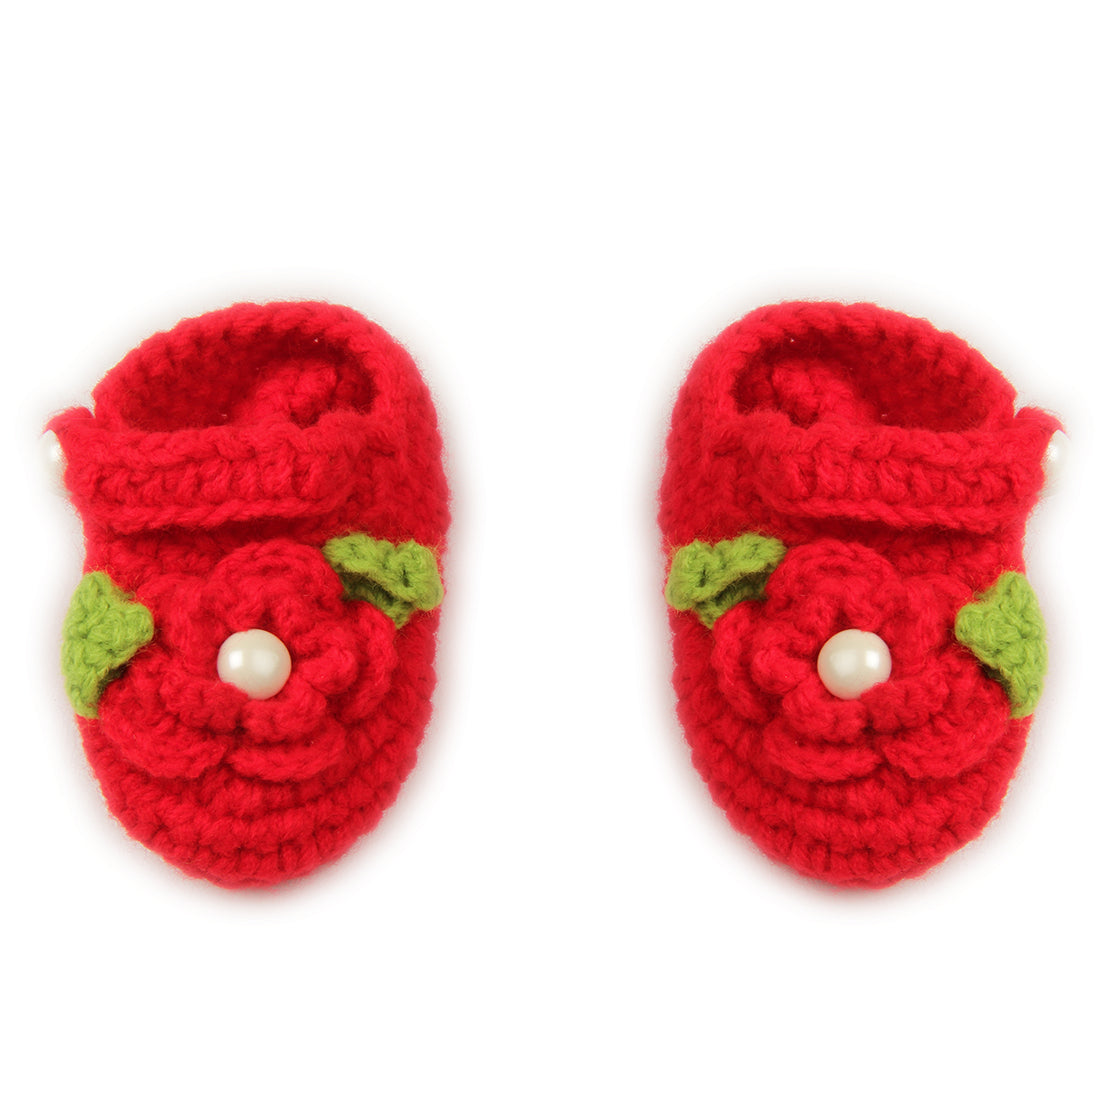 Baby Crochet Shoes Baby Booties Woollen Baby Sandals Crochet